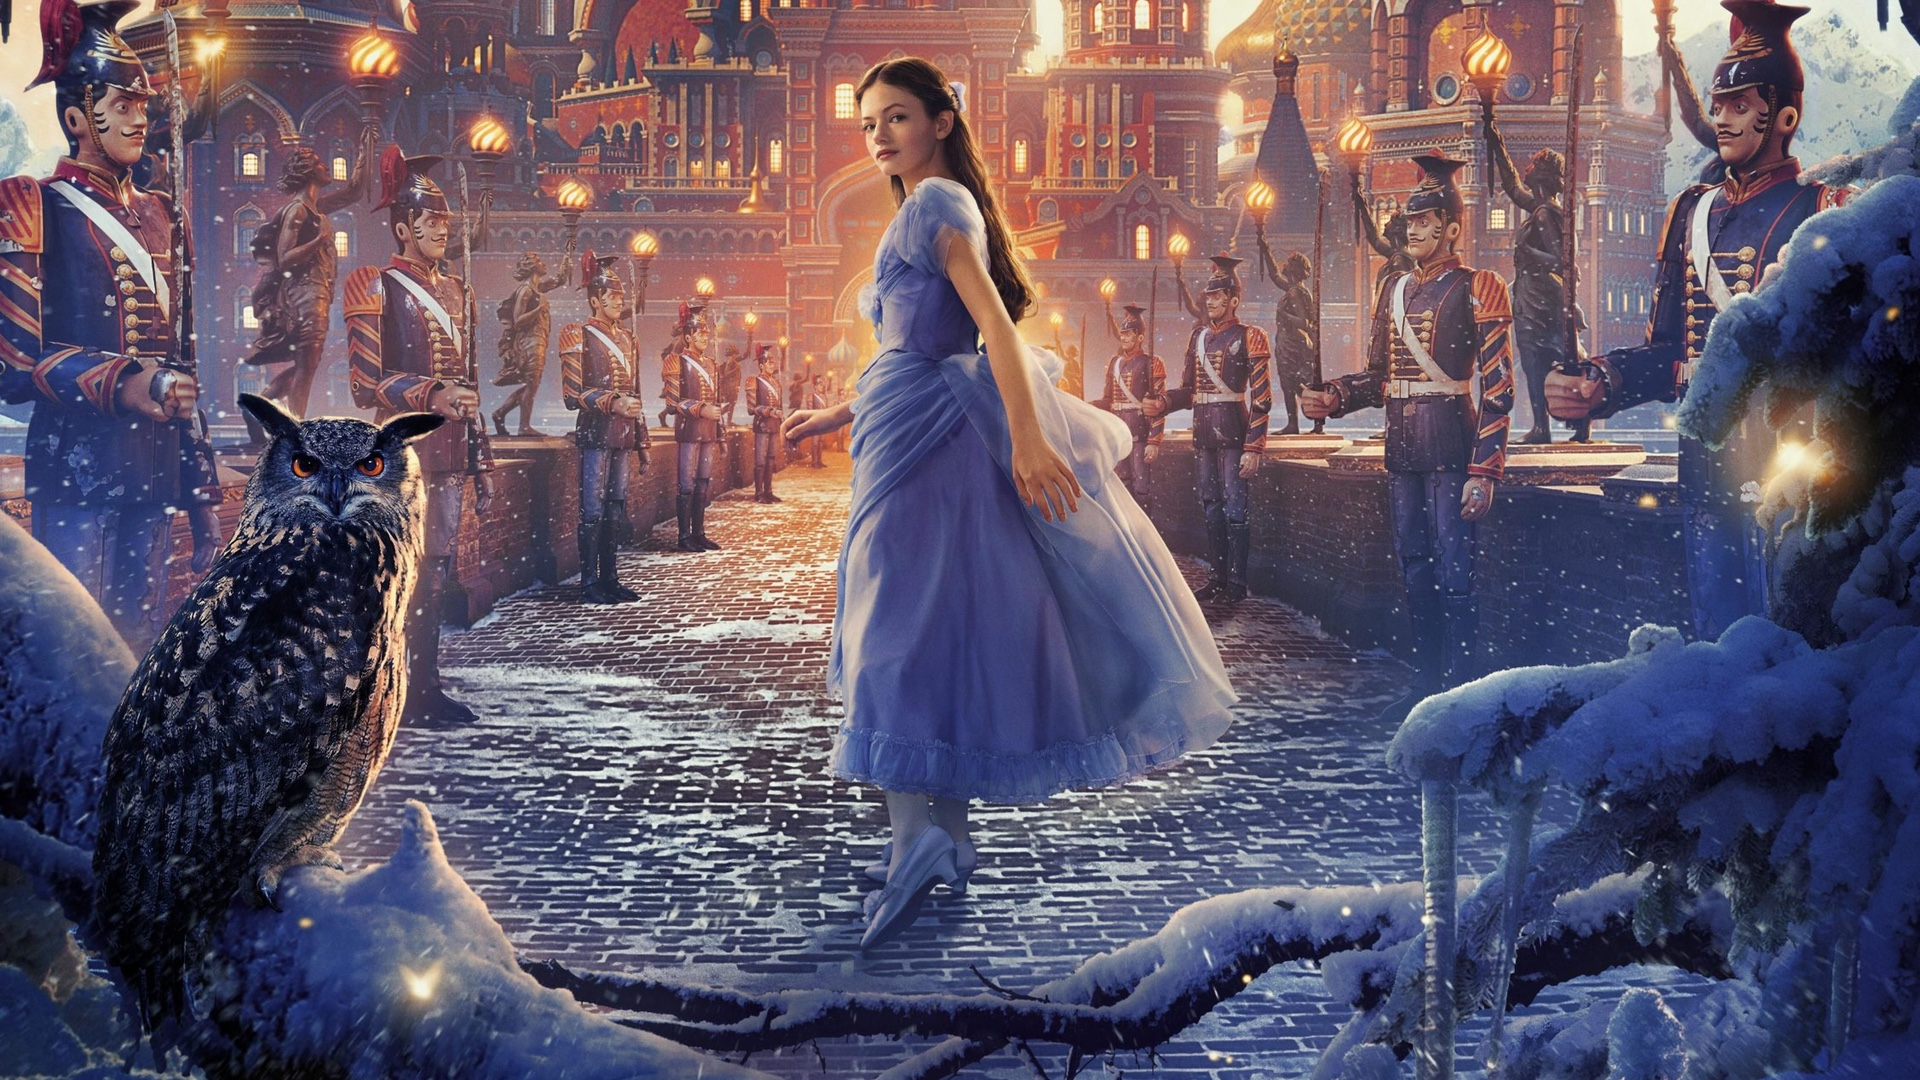 فيلم The Nutcracker And The Four Realms